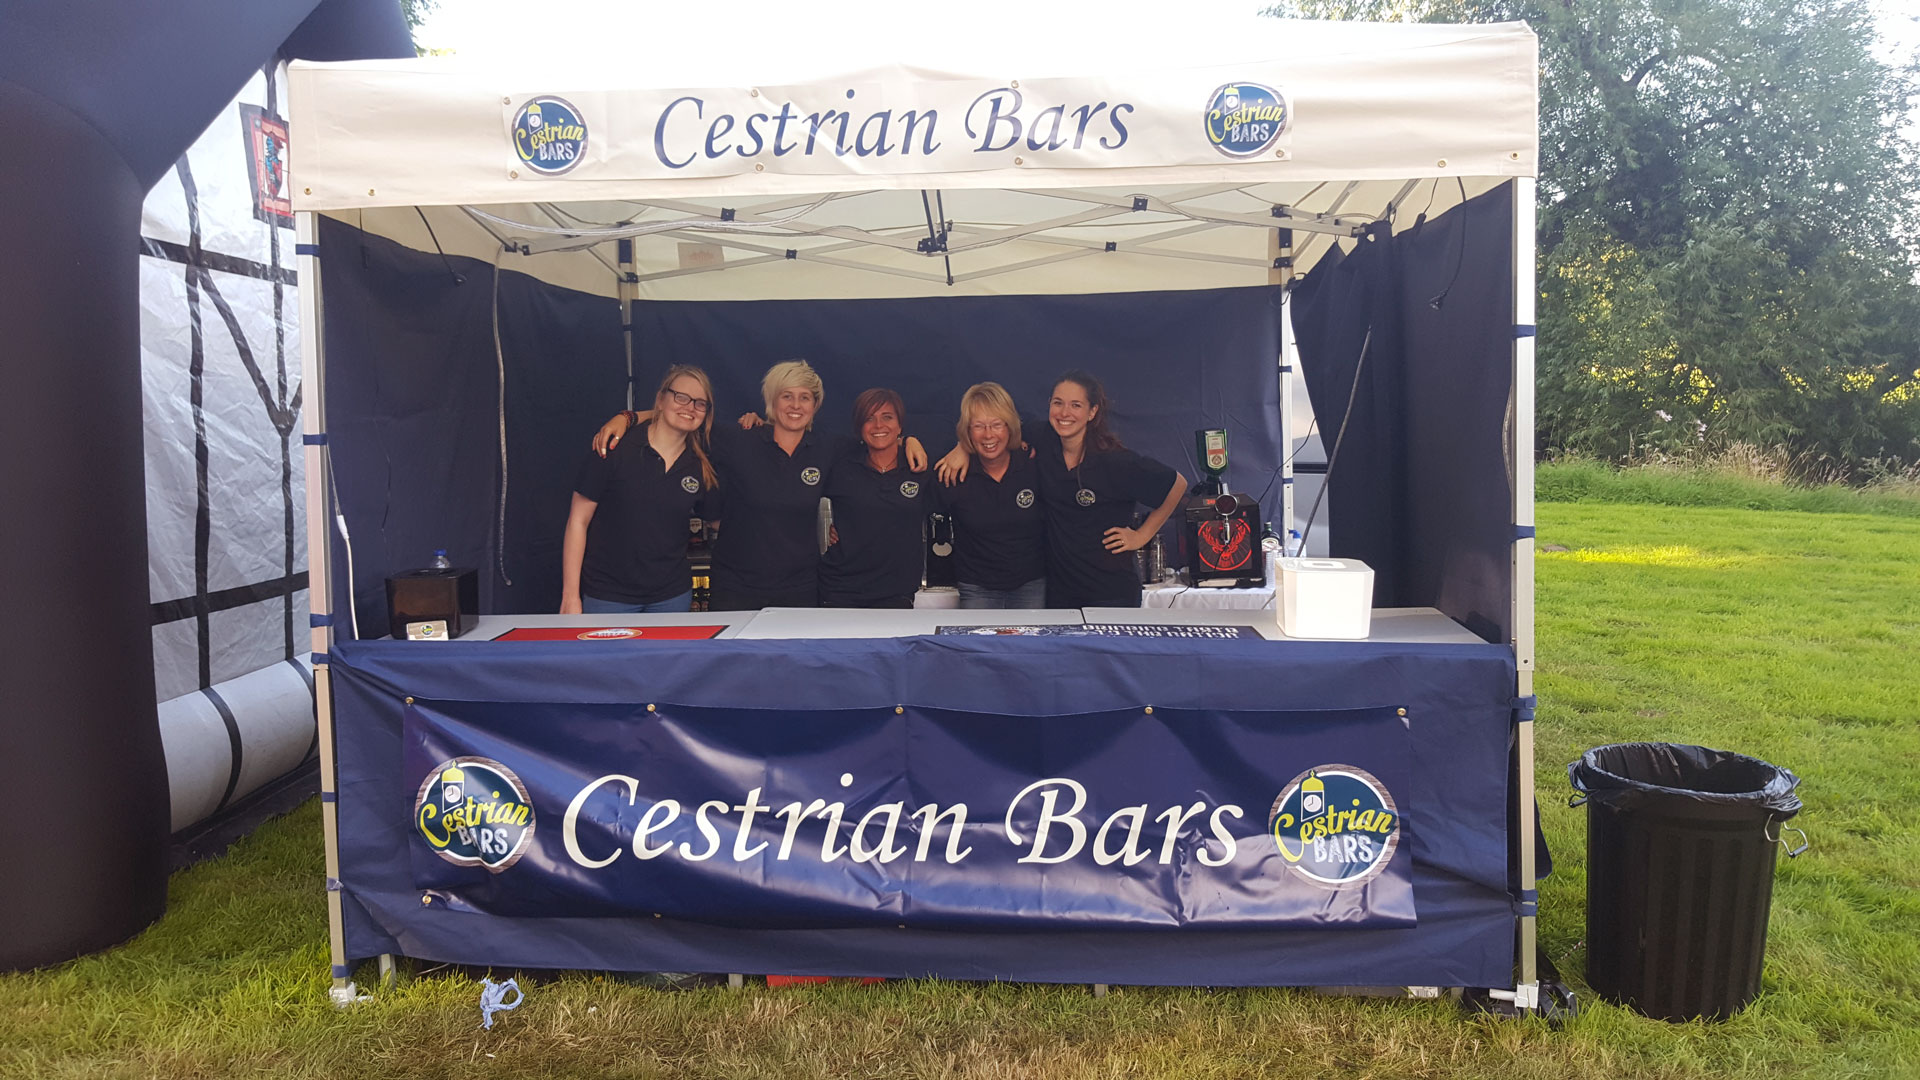 Some Of The Cestrian Bars Team